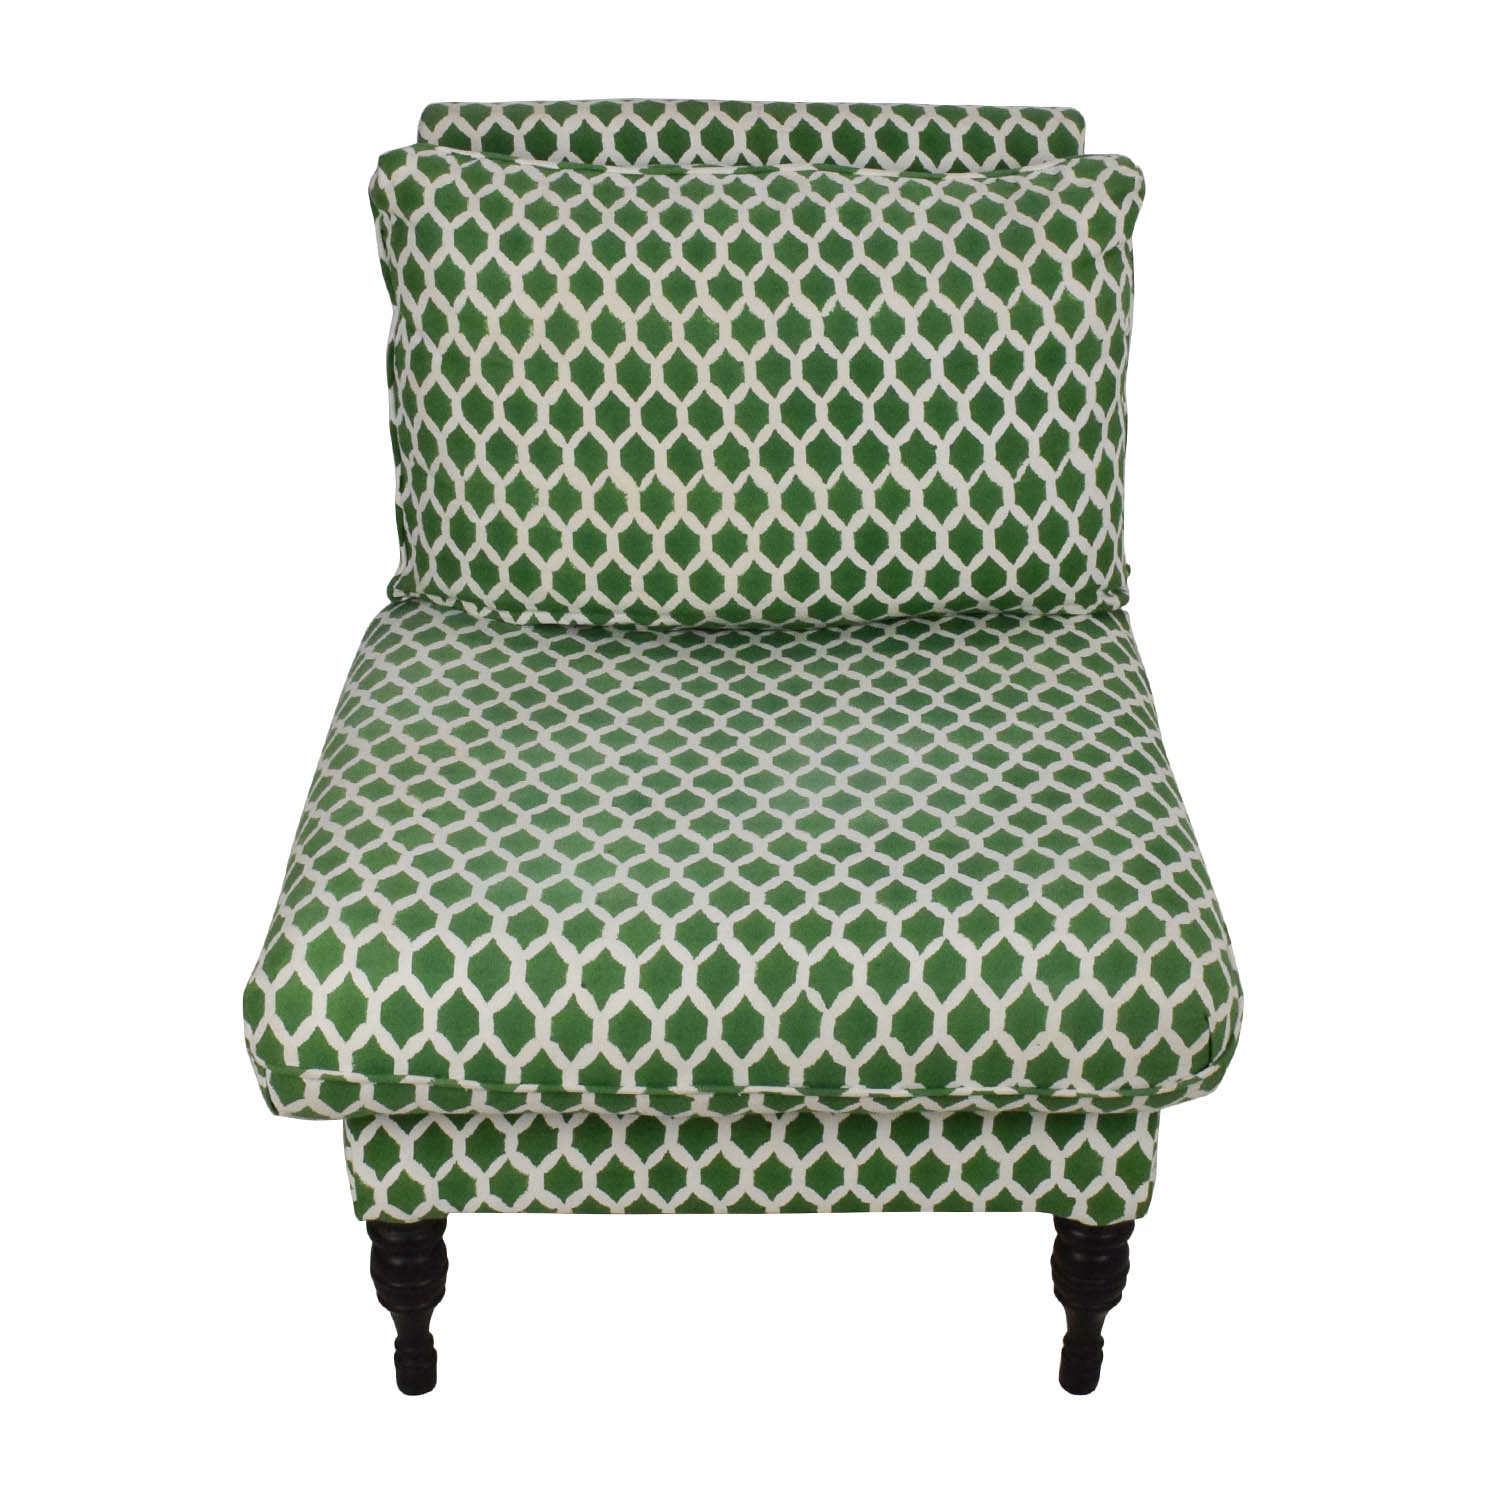 shop Roberta Roller Rabbit Roberta Roller Rabbit Oversized Chair online